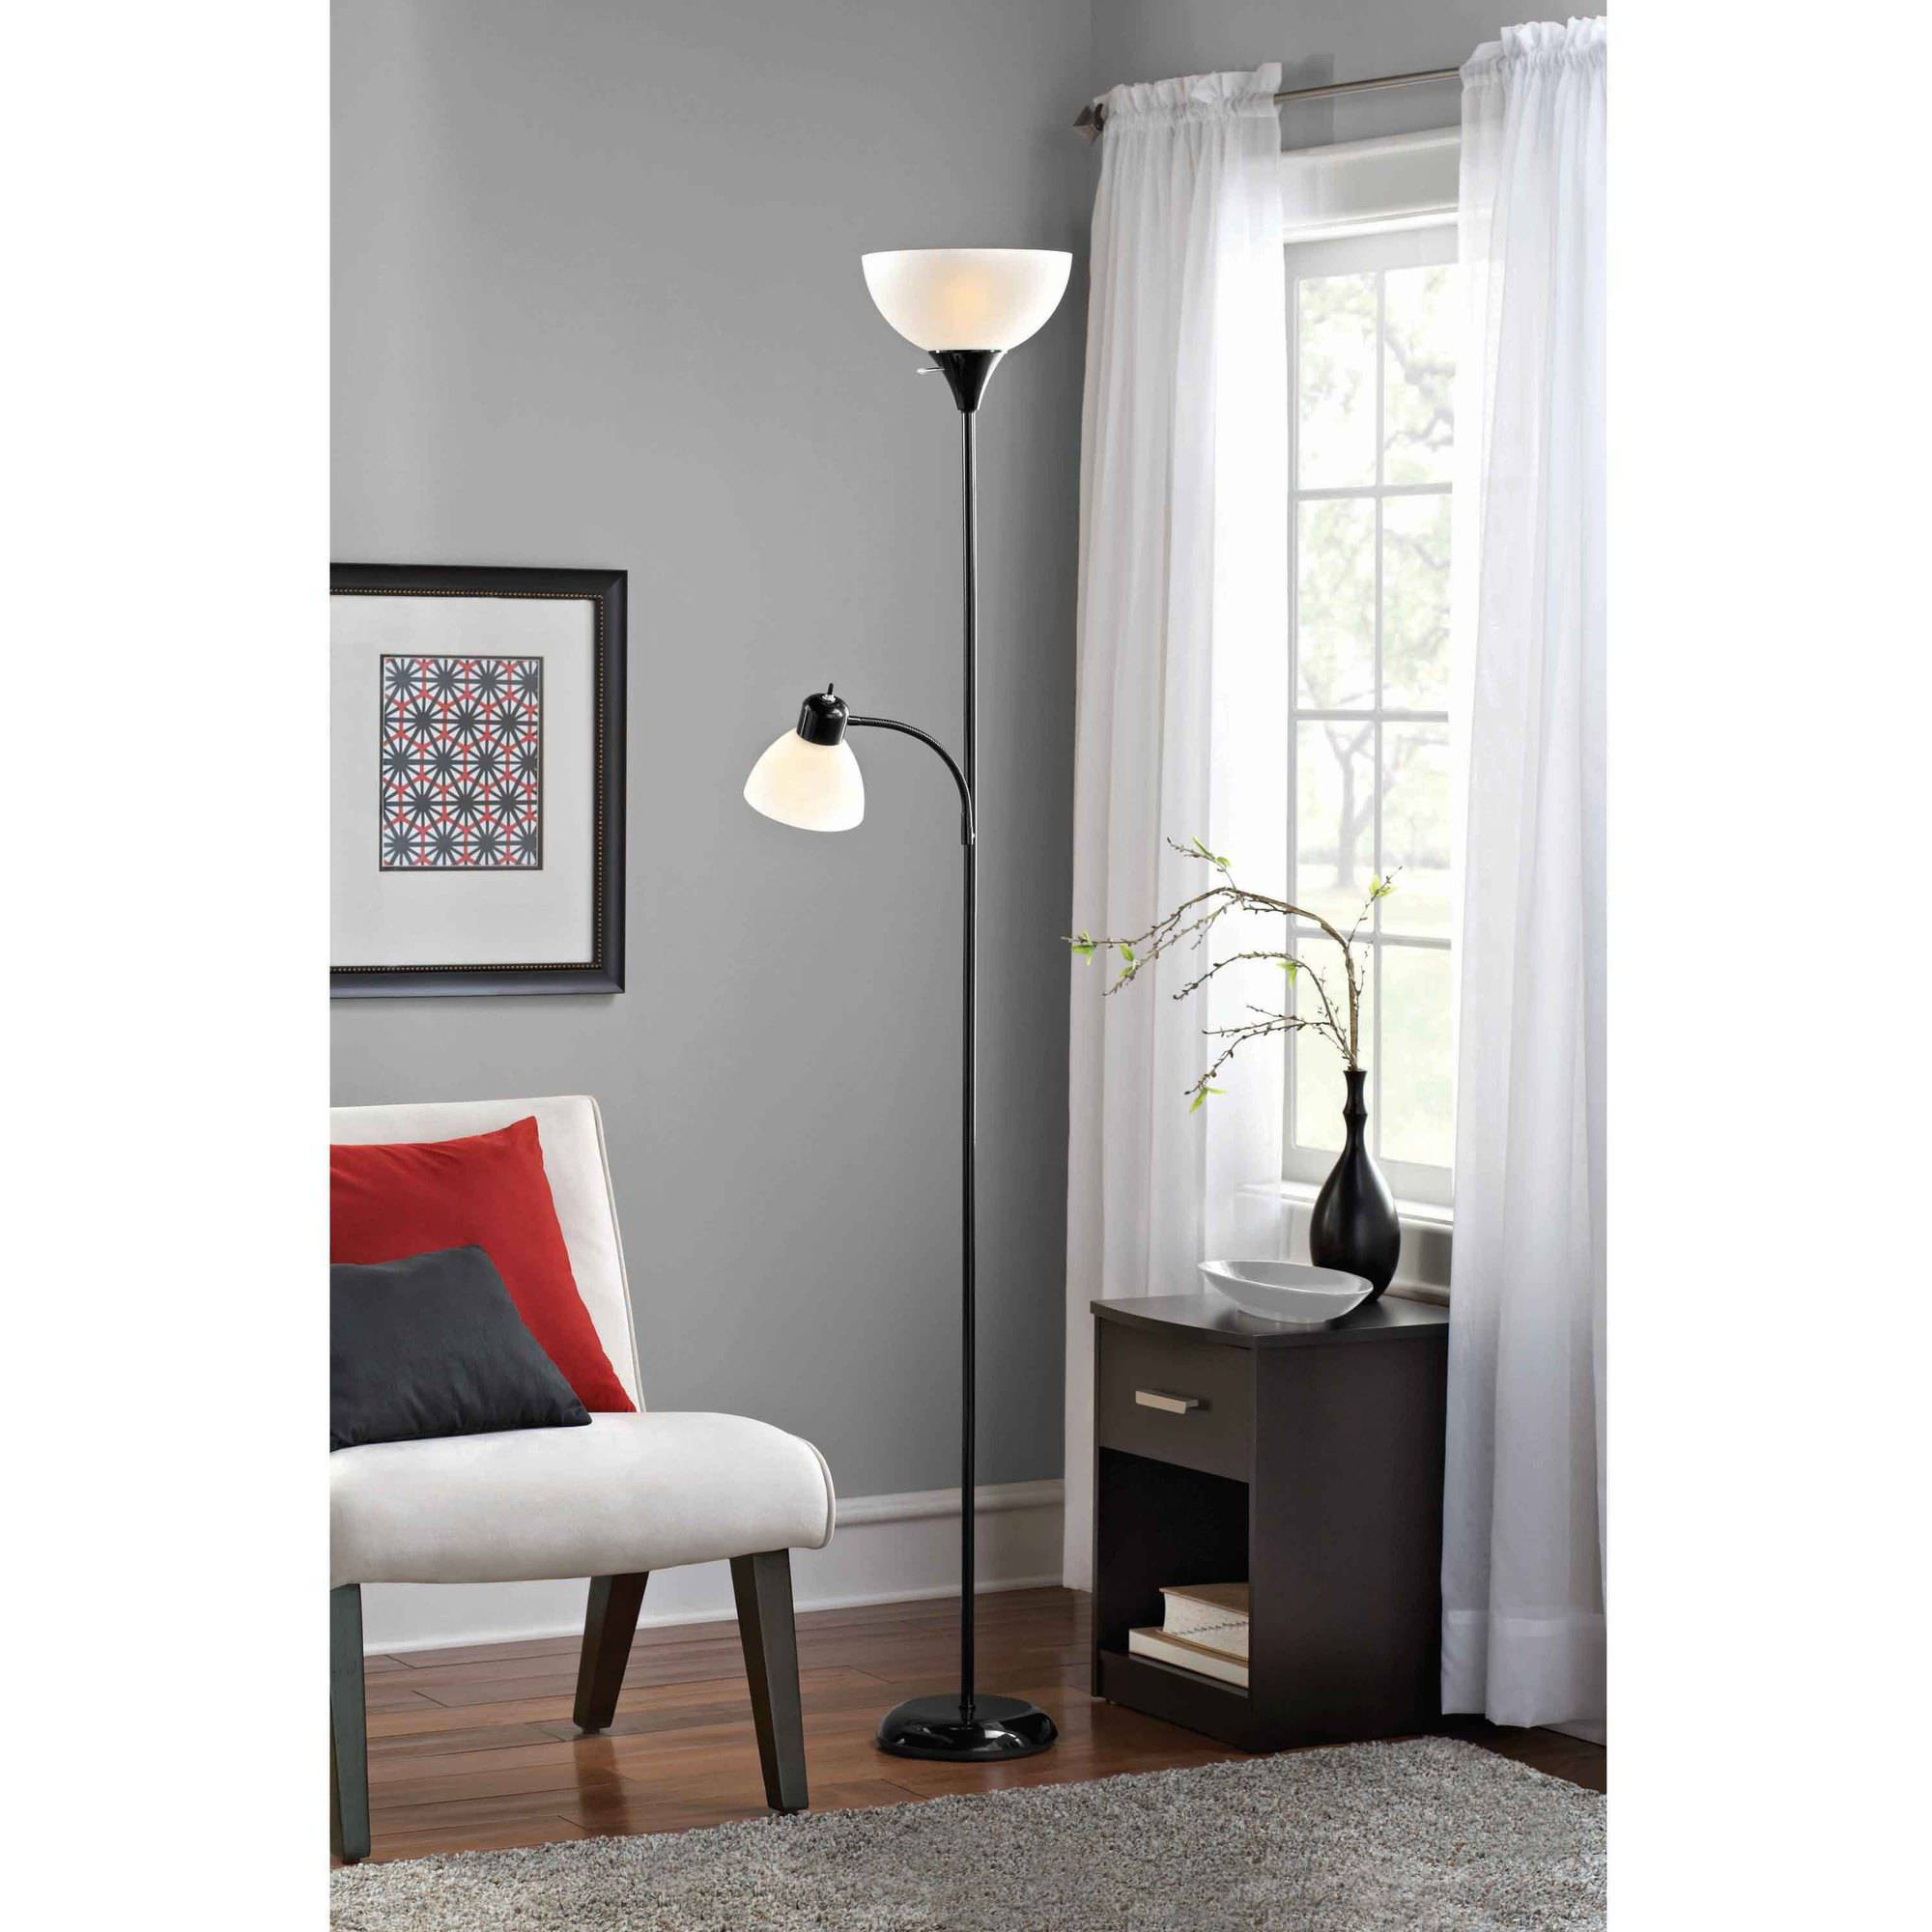 Mainstays Combo Floor Lamp With Bulbs Included